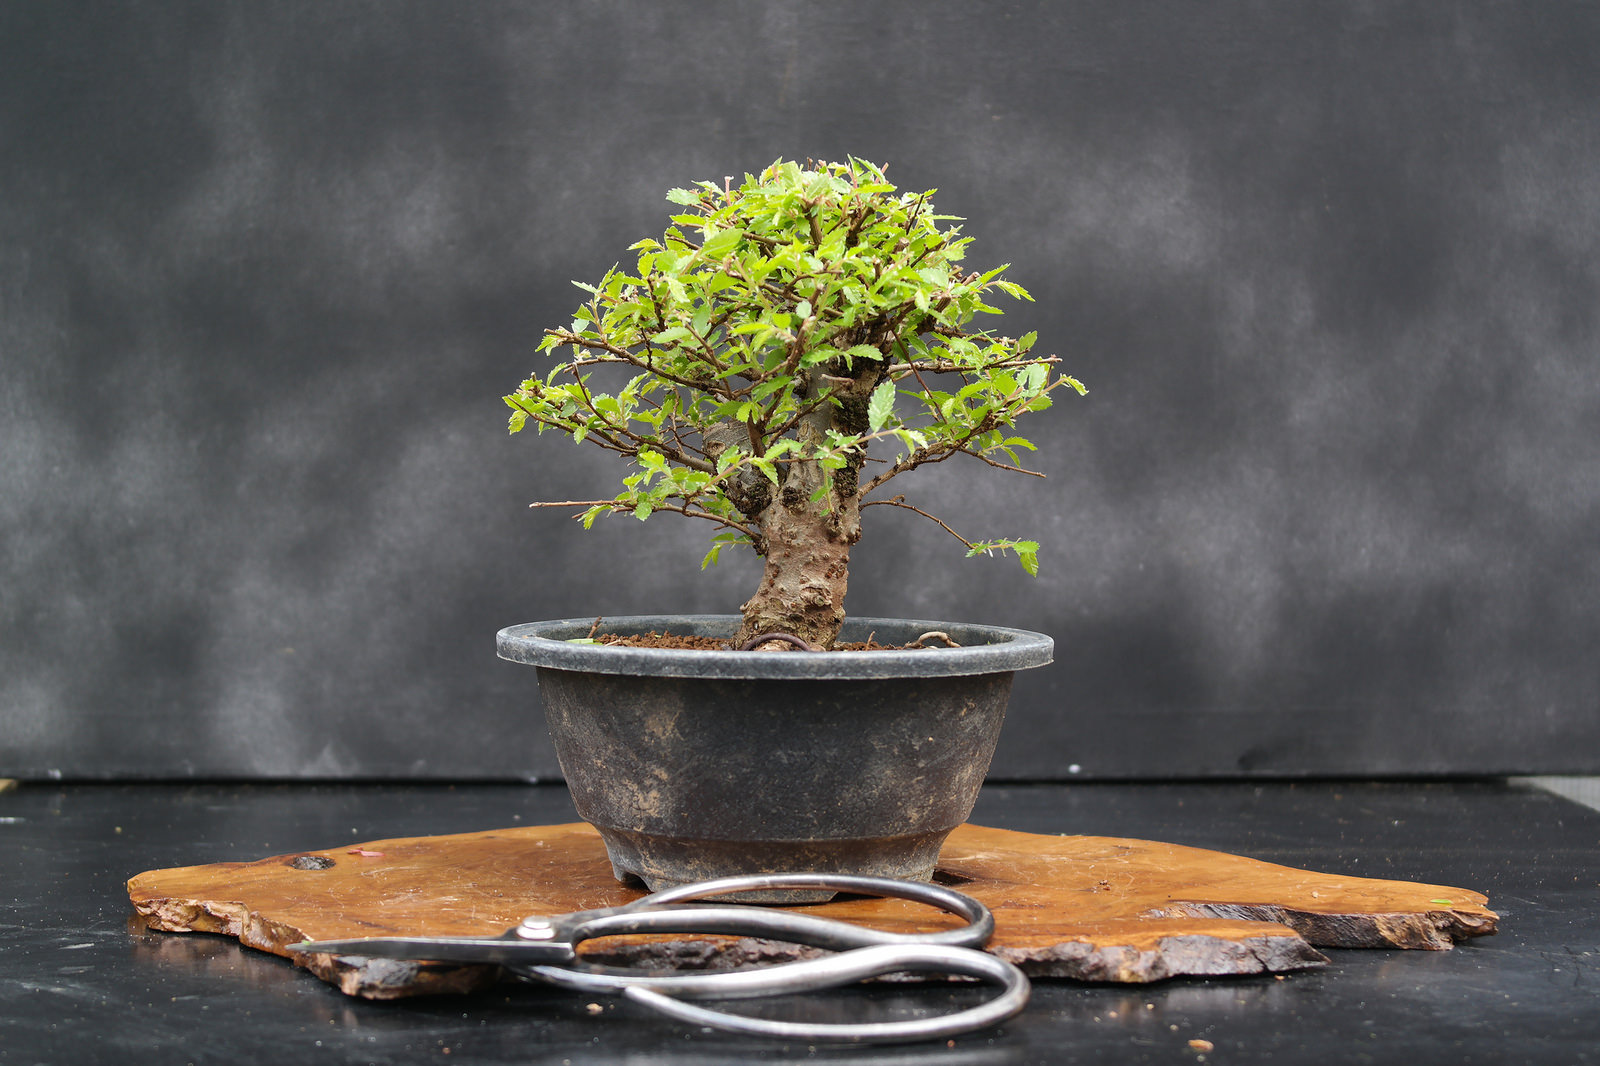 Un bonsai è per la vita. La bellezza del tempo in una pianta